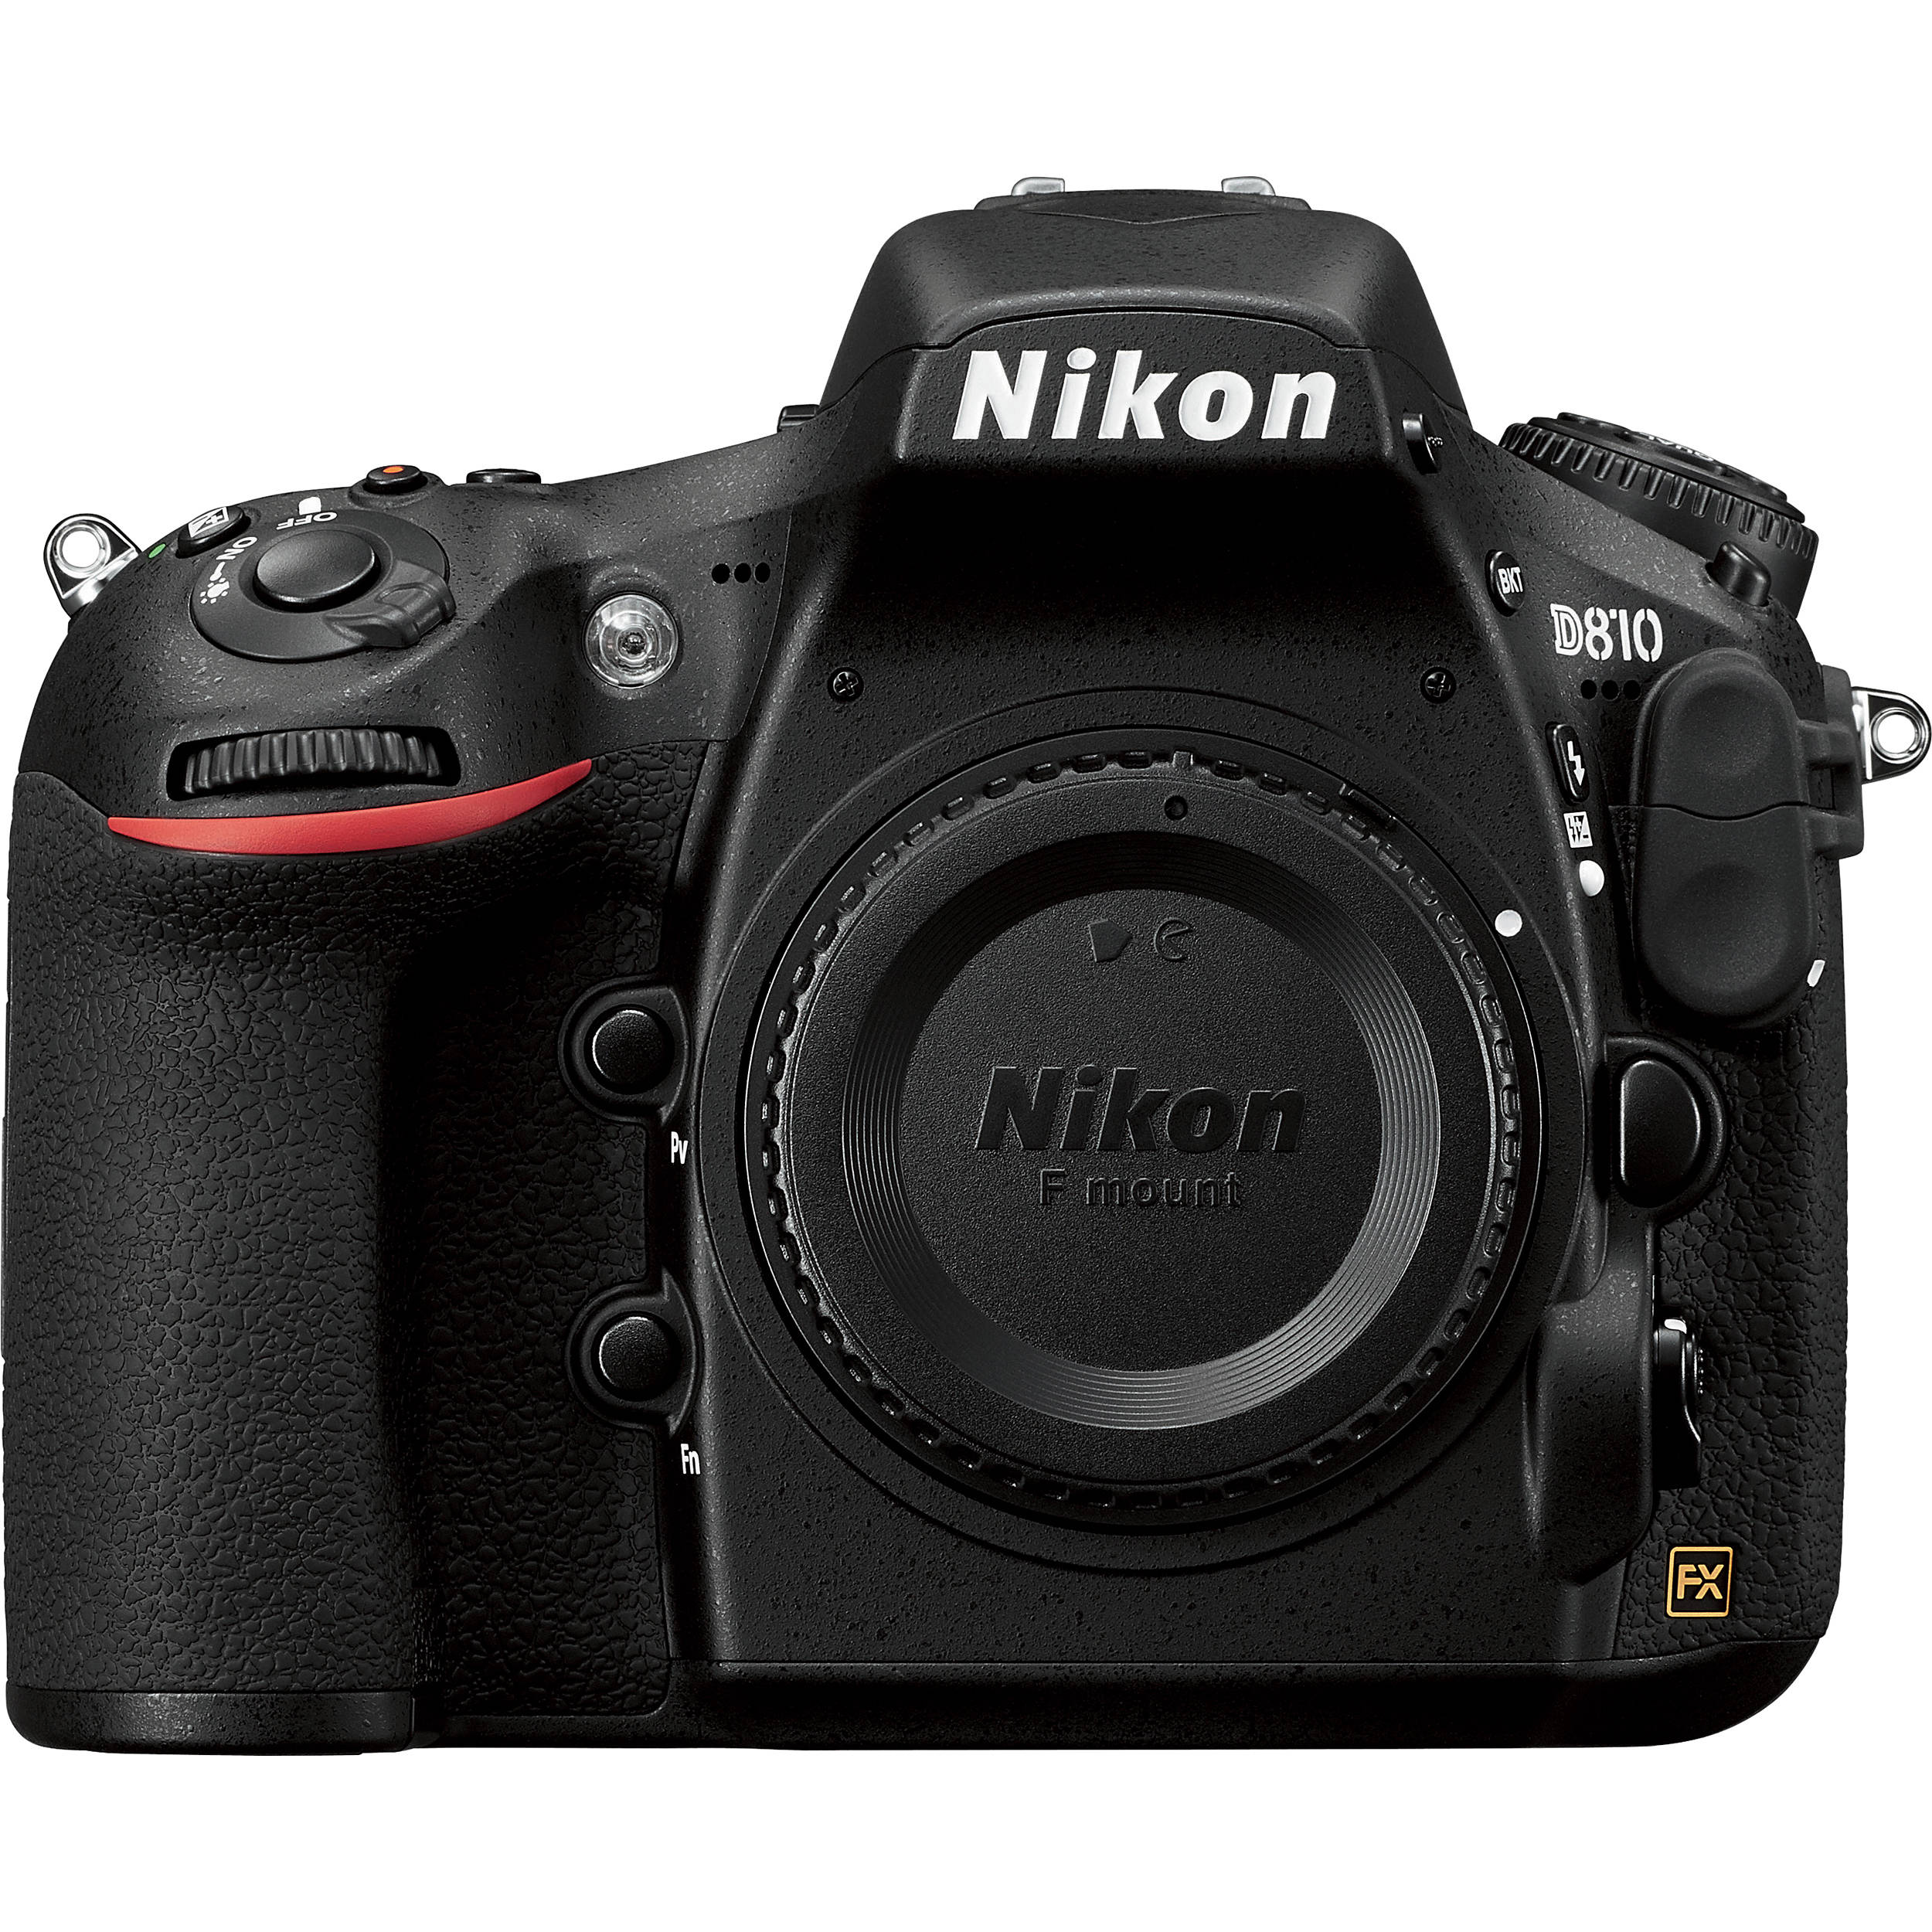 Camera Which Is Better Slr Or Dslr Camera nikon d810 digital slr 1542 camera body review at bh dslr only